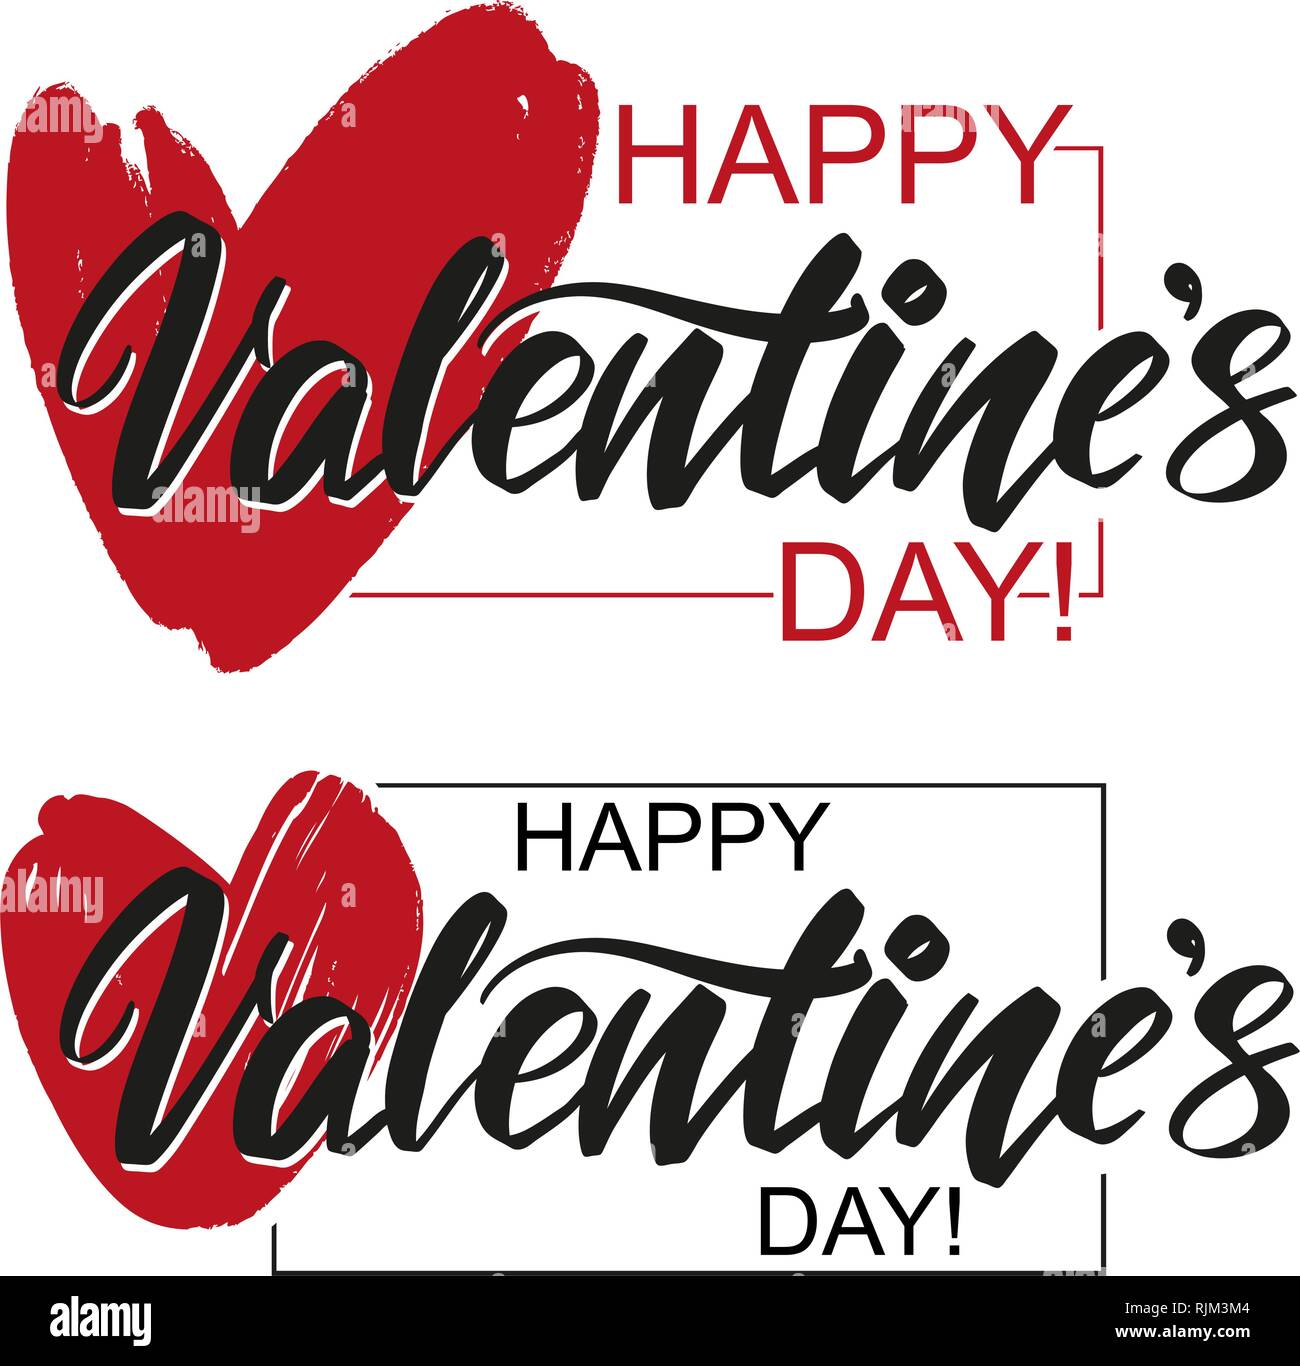 Happy Valentine s day text sur le fond du coeur sur fond blanc. , Valentine s day, carte de souhaits hand drawn vector illustration croquis Photo Stock